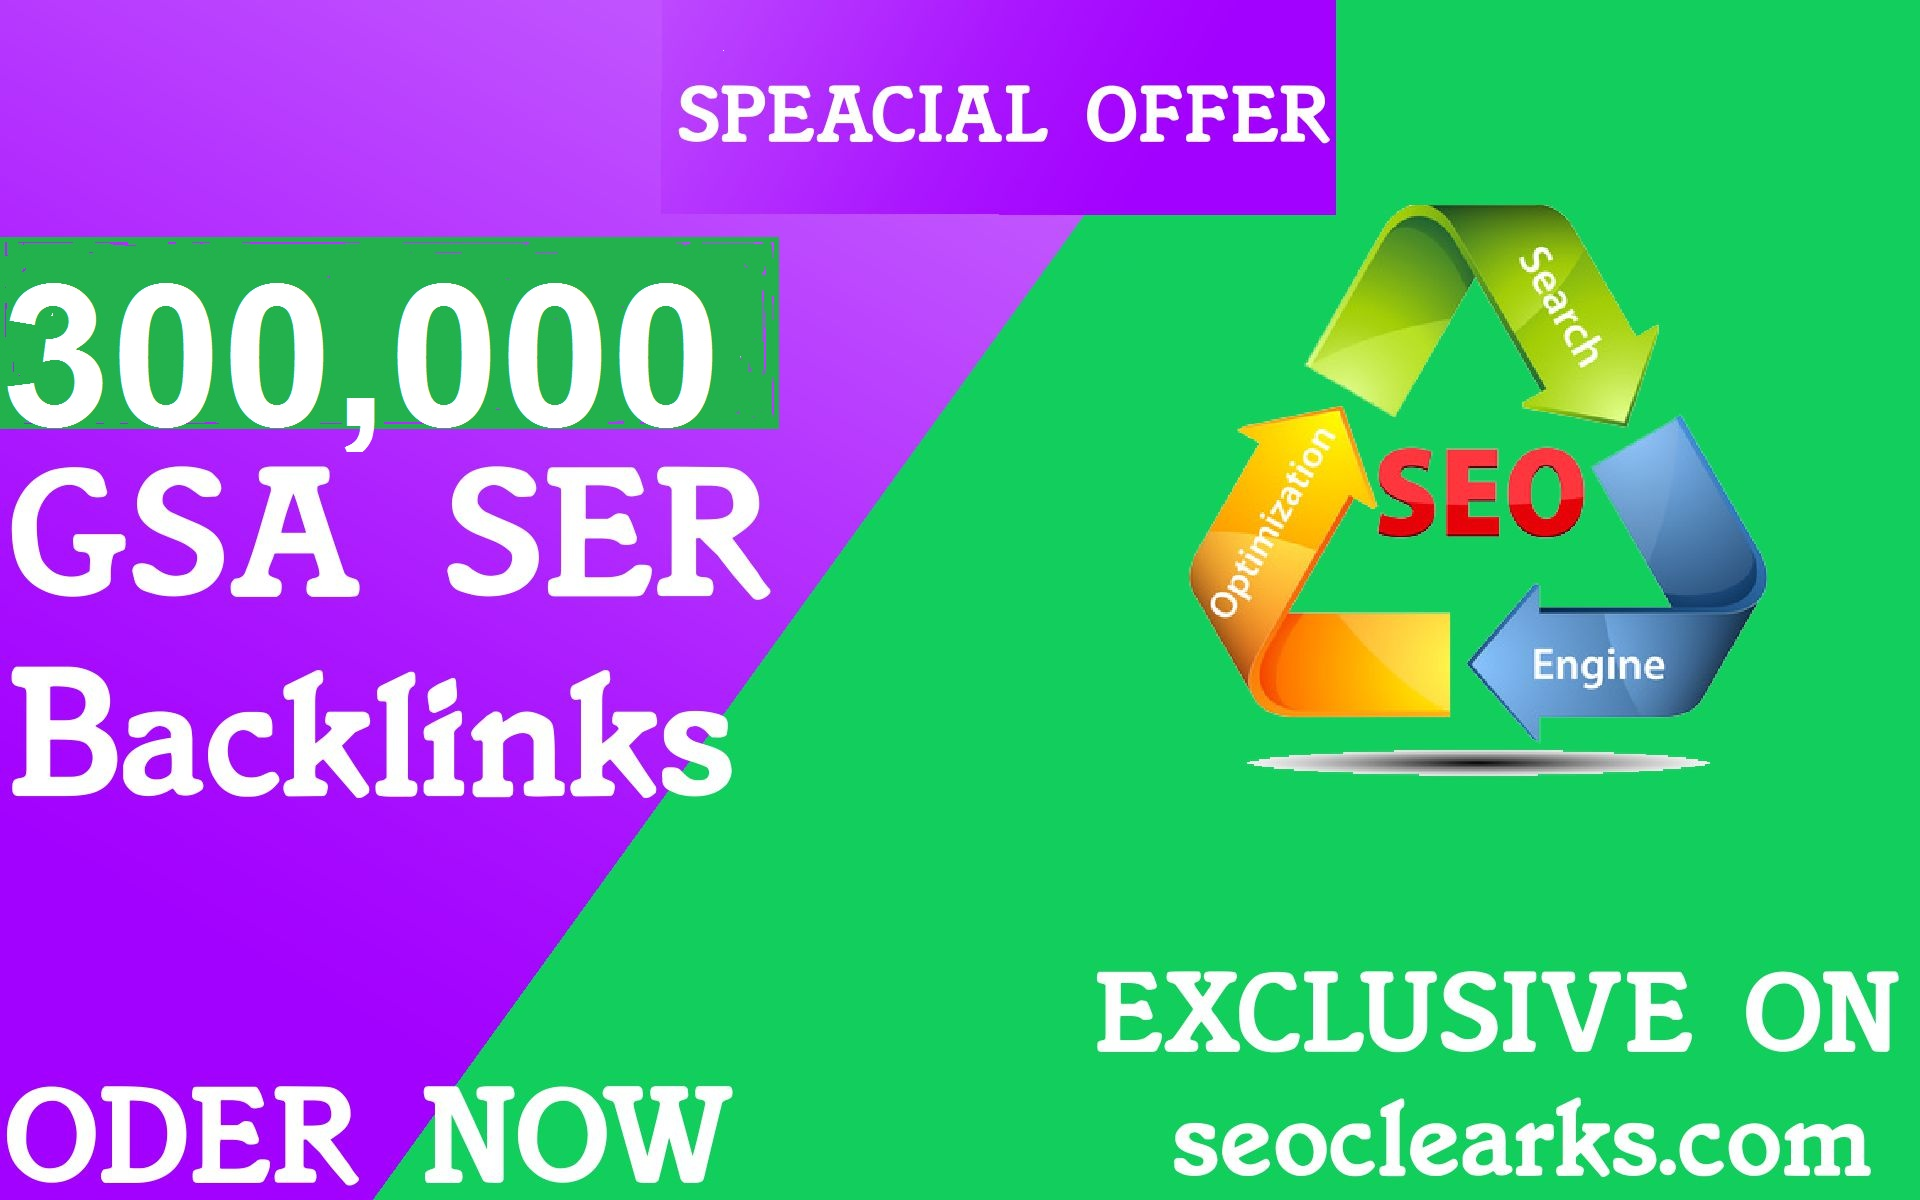 Build High Quality 400000 Gsa Ser Backlinks For Highe...